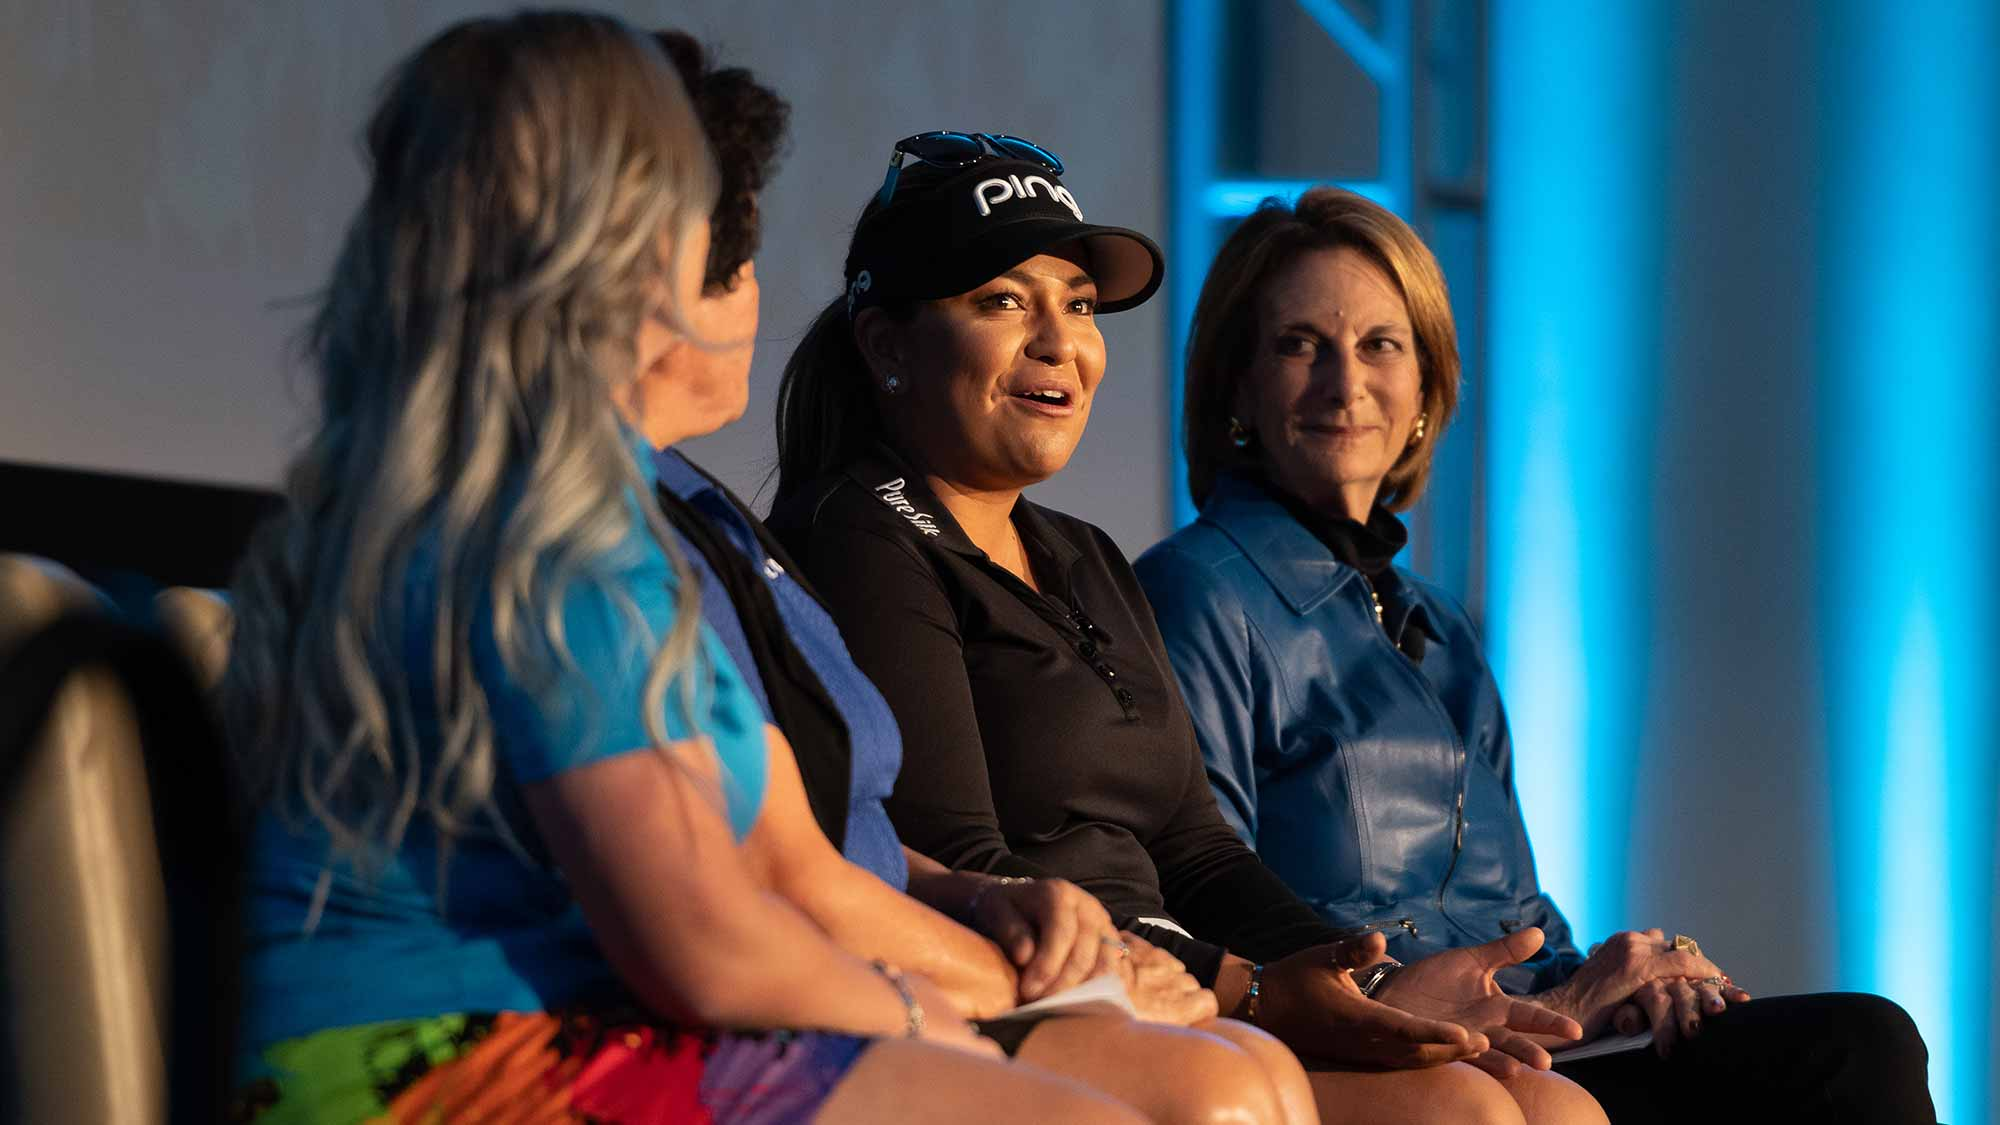 Lizette Salas speaks during the LPGA Announcement of new brand positioning encouraging girls to #DriveOn at JW Marriott Phoenix Desert Ridge on March 20, 2019 in Phoenix, Arizona